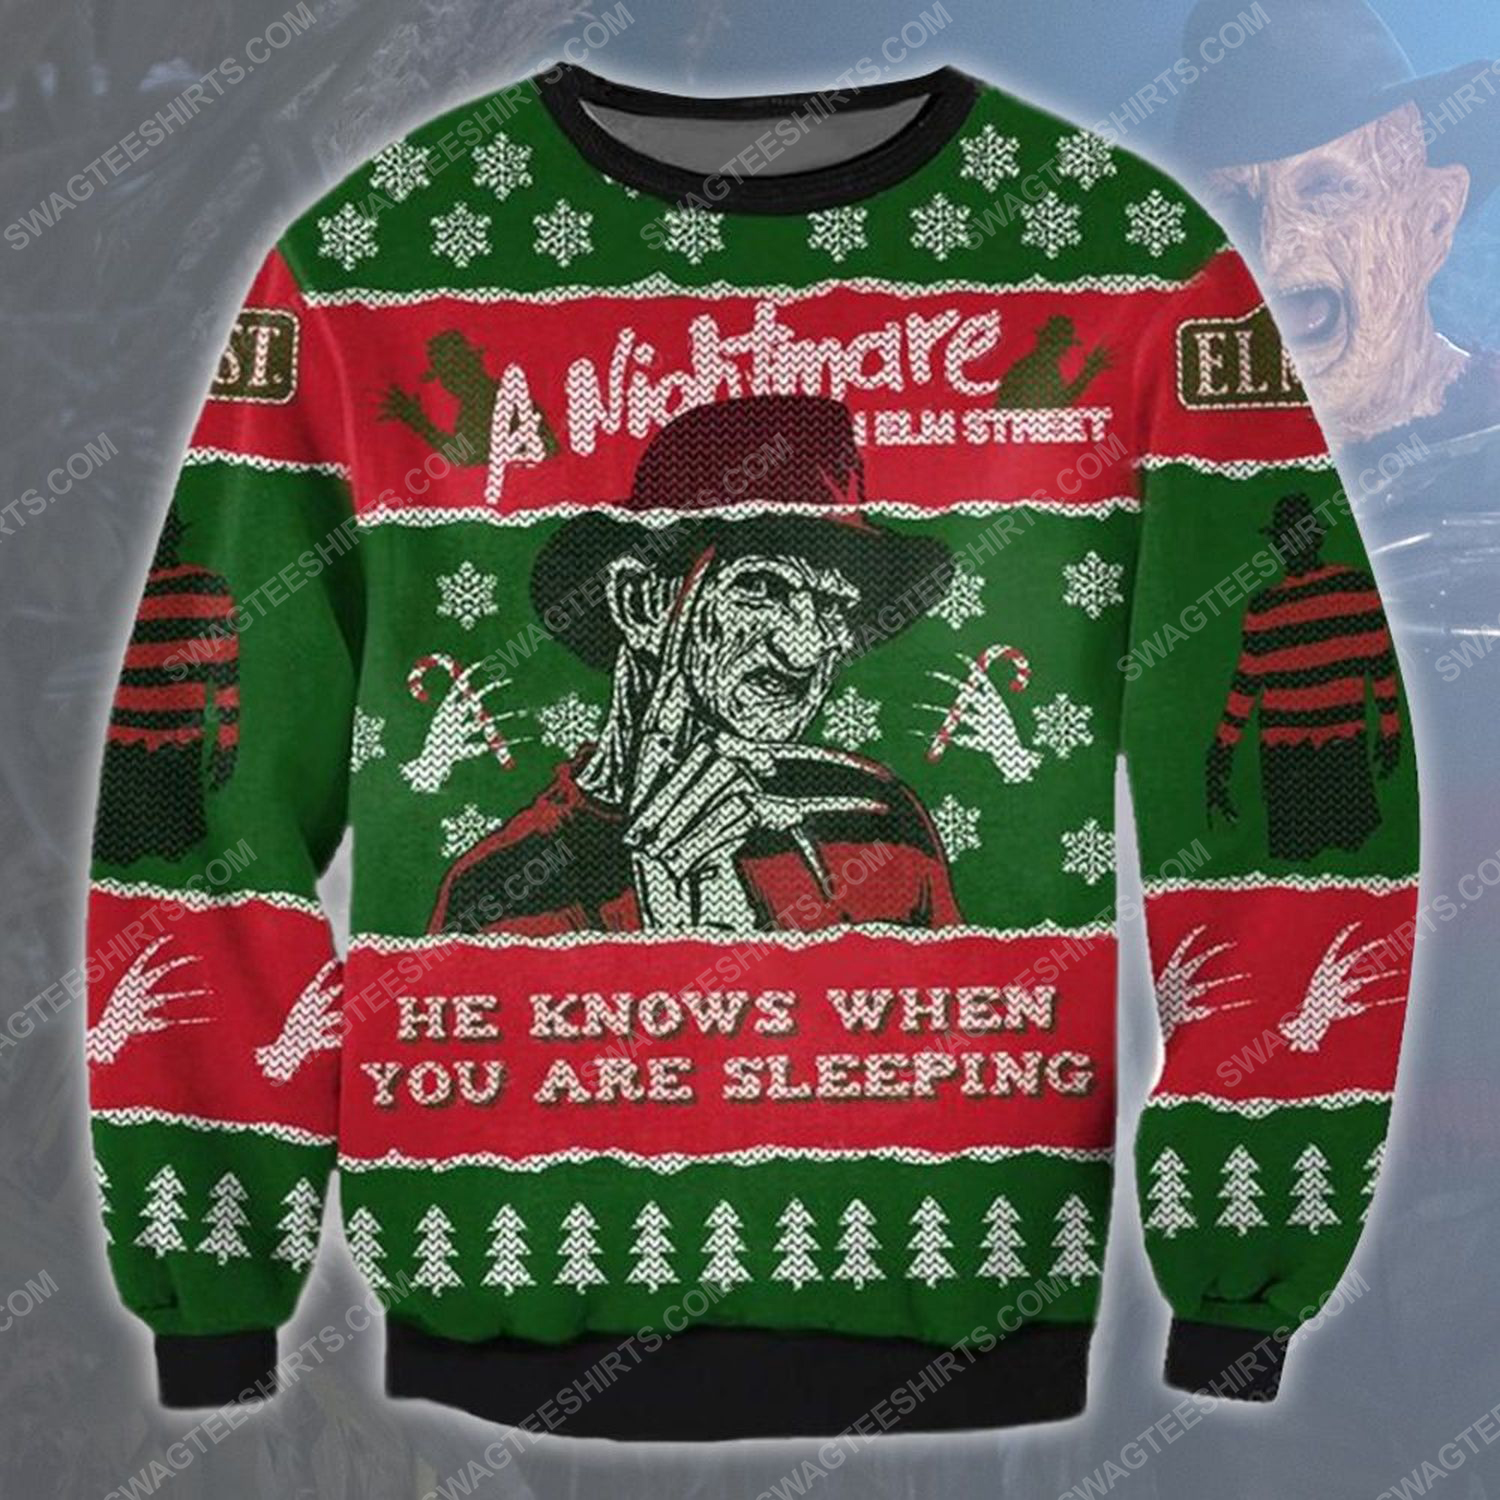 A nightmare on elm street he know when you are sleeping ugly christmas sweater - Copy